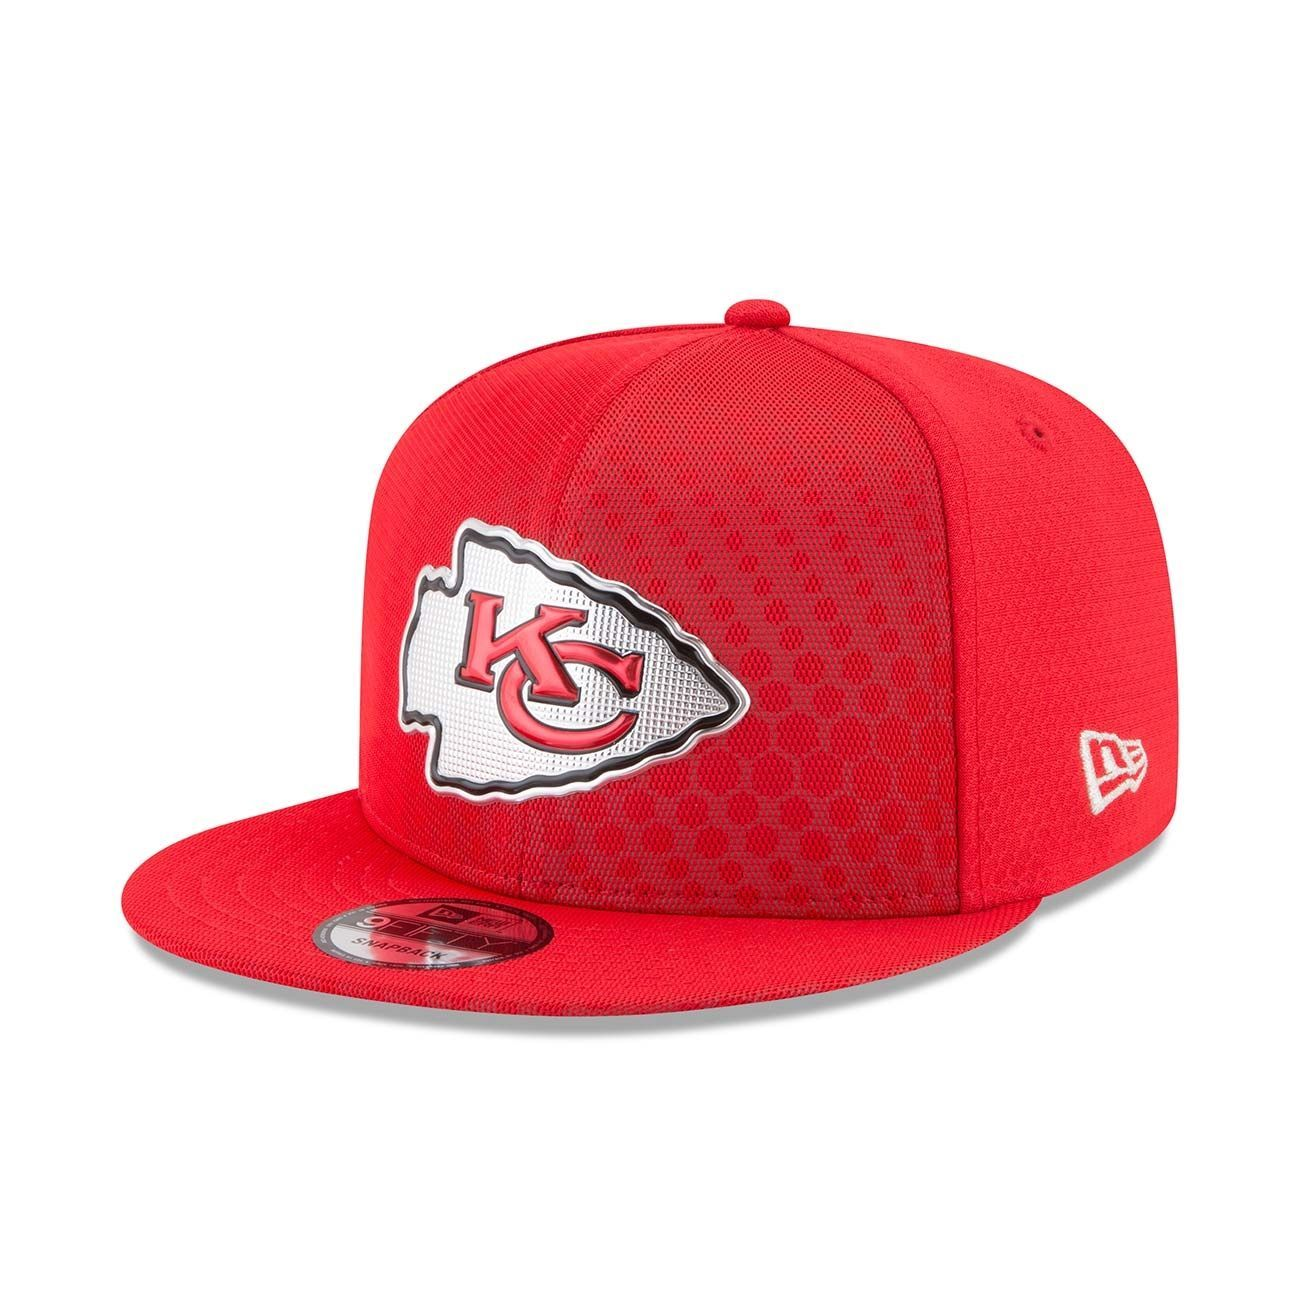 separation shoes 62541 a8dea ... cheapest new era kansas city chiefs 2017 color rush nfl snapback cap  taass fan shop de848